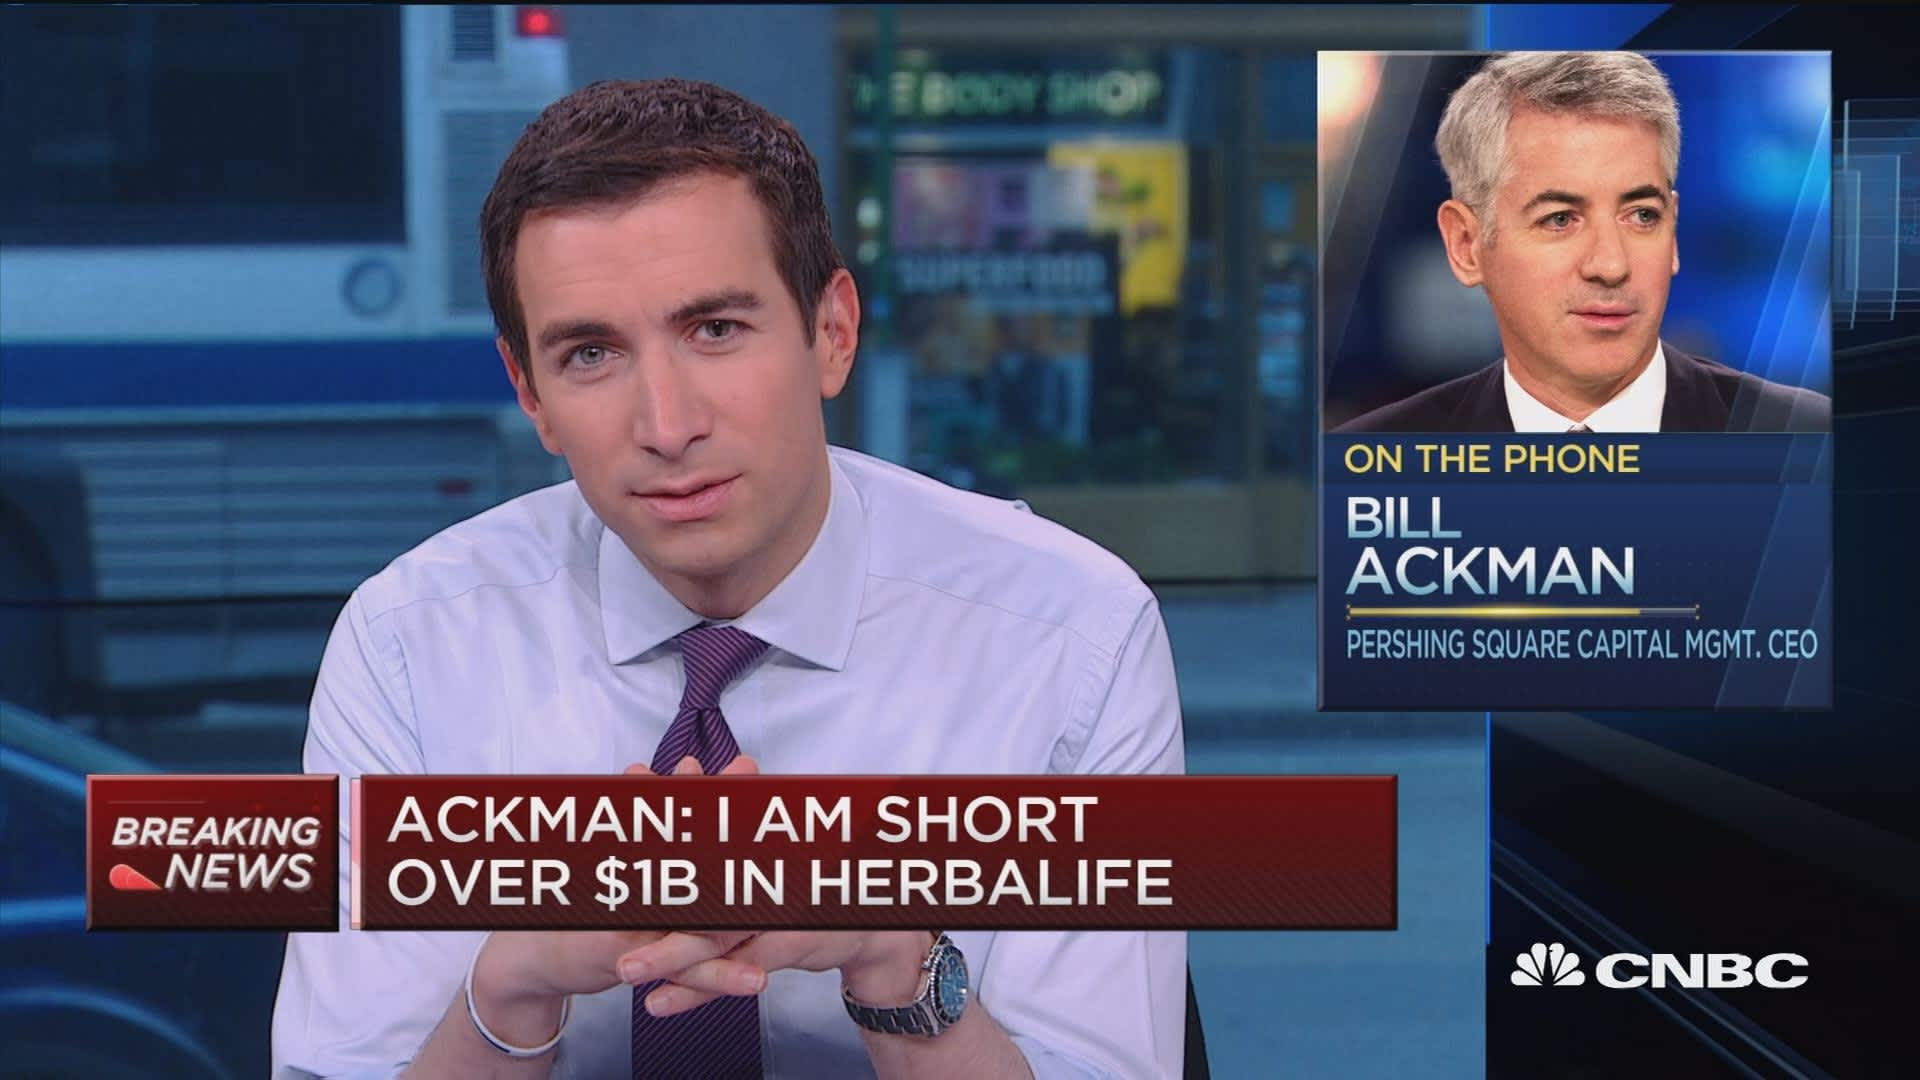 Bill Ackman - CNBC